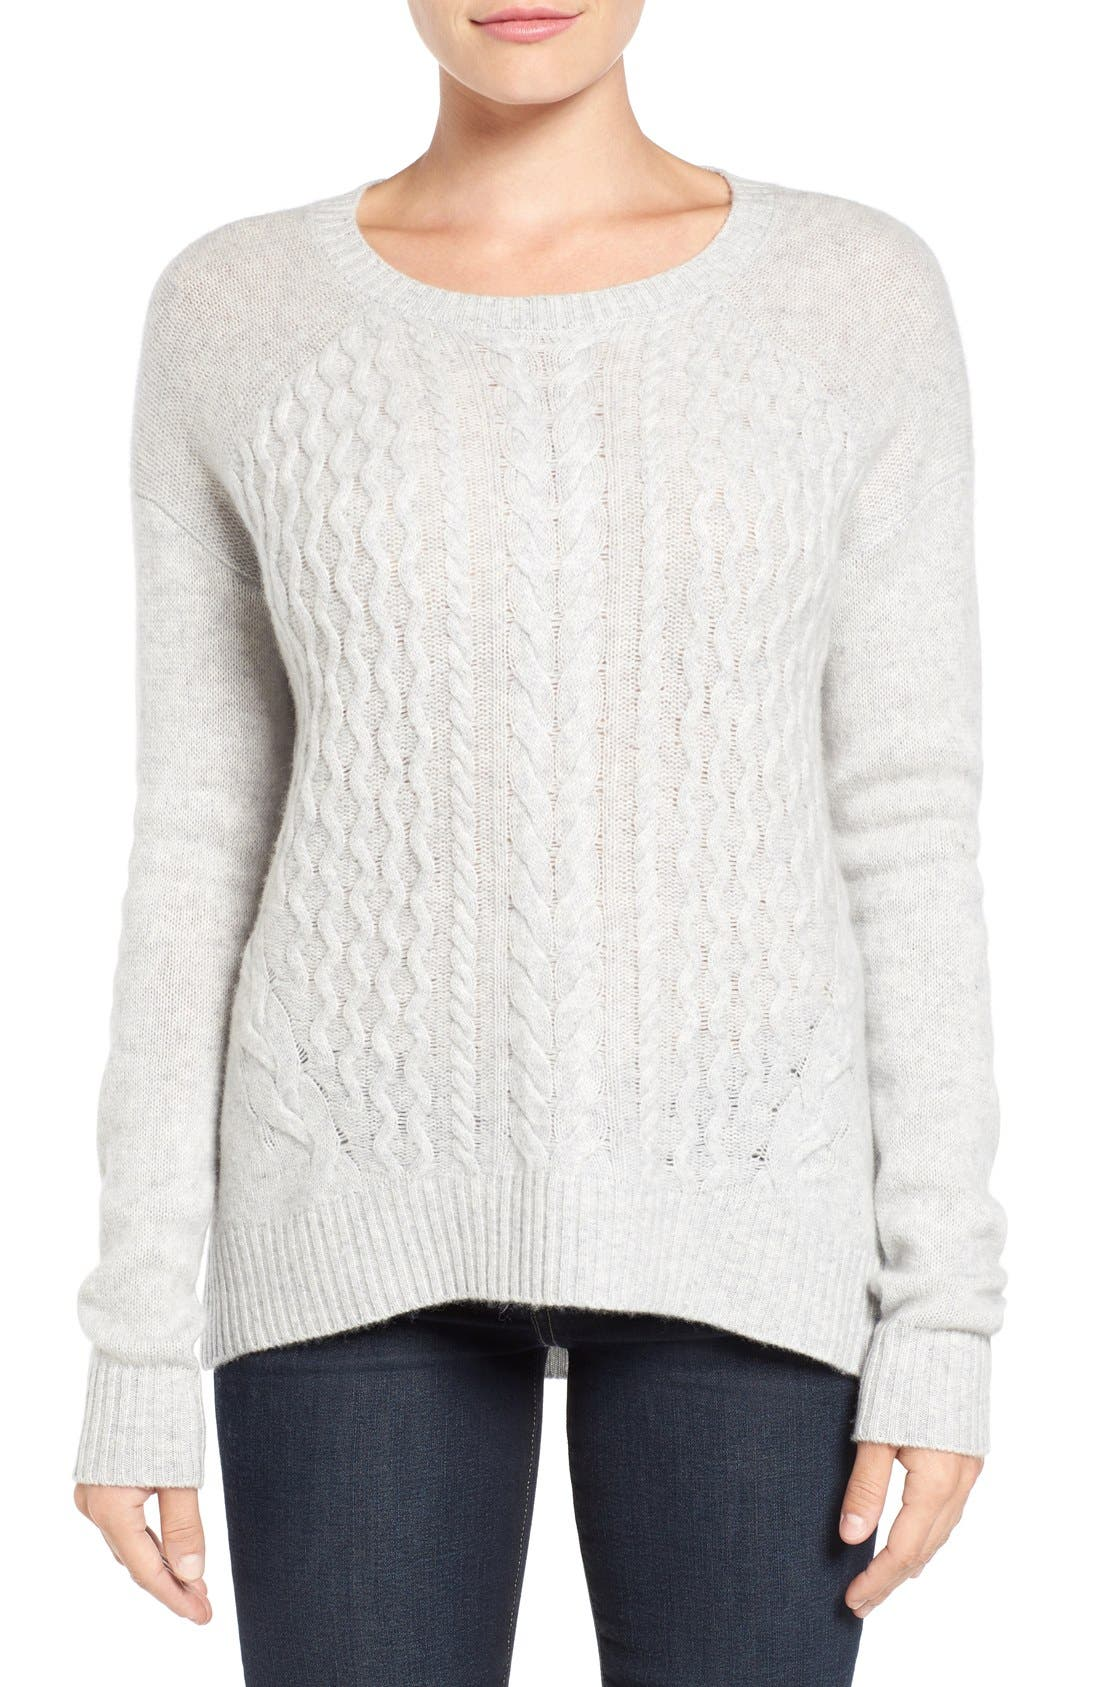 Alternate Image 1 Selected - Halogen® Cable Knit Wool & Cashmere Sweater (Regular & Petite)